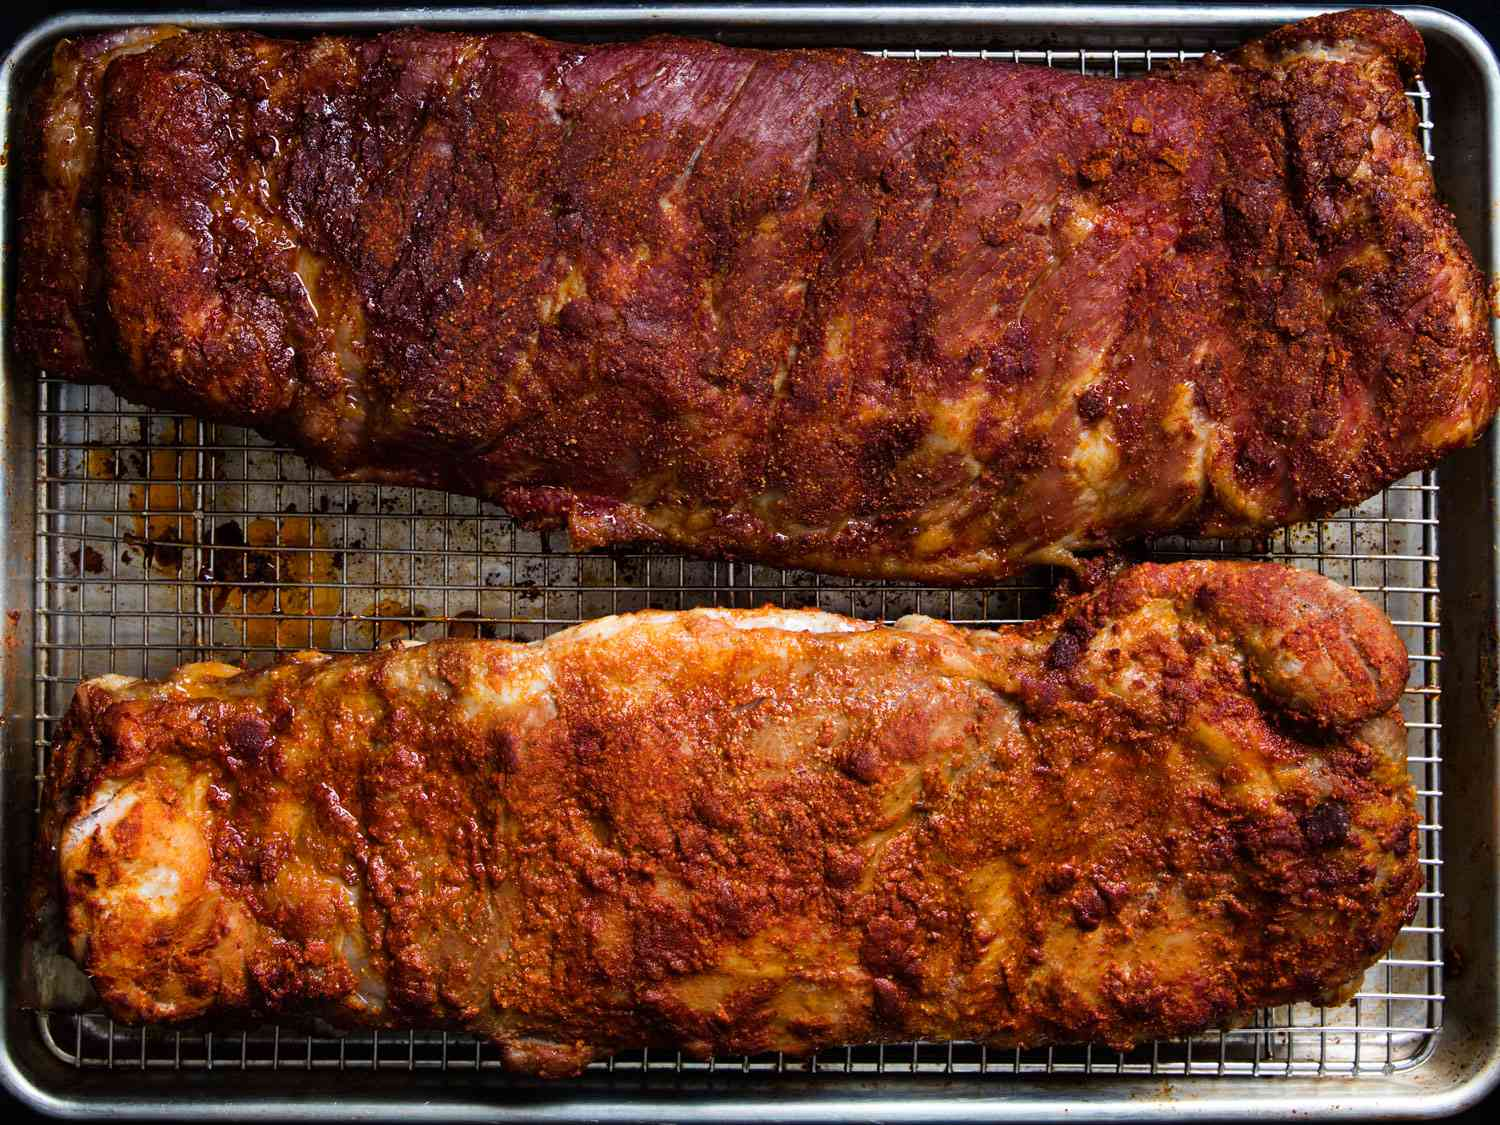 20160606-oven-barbecue-ribs-vicky-wasik-2.jpg